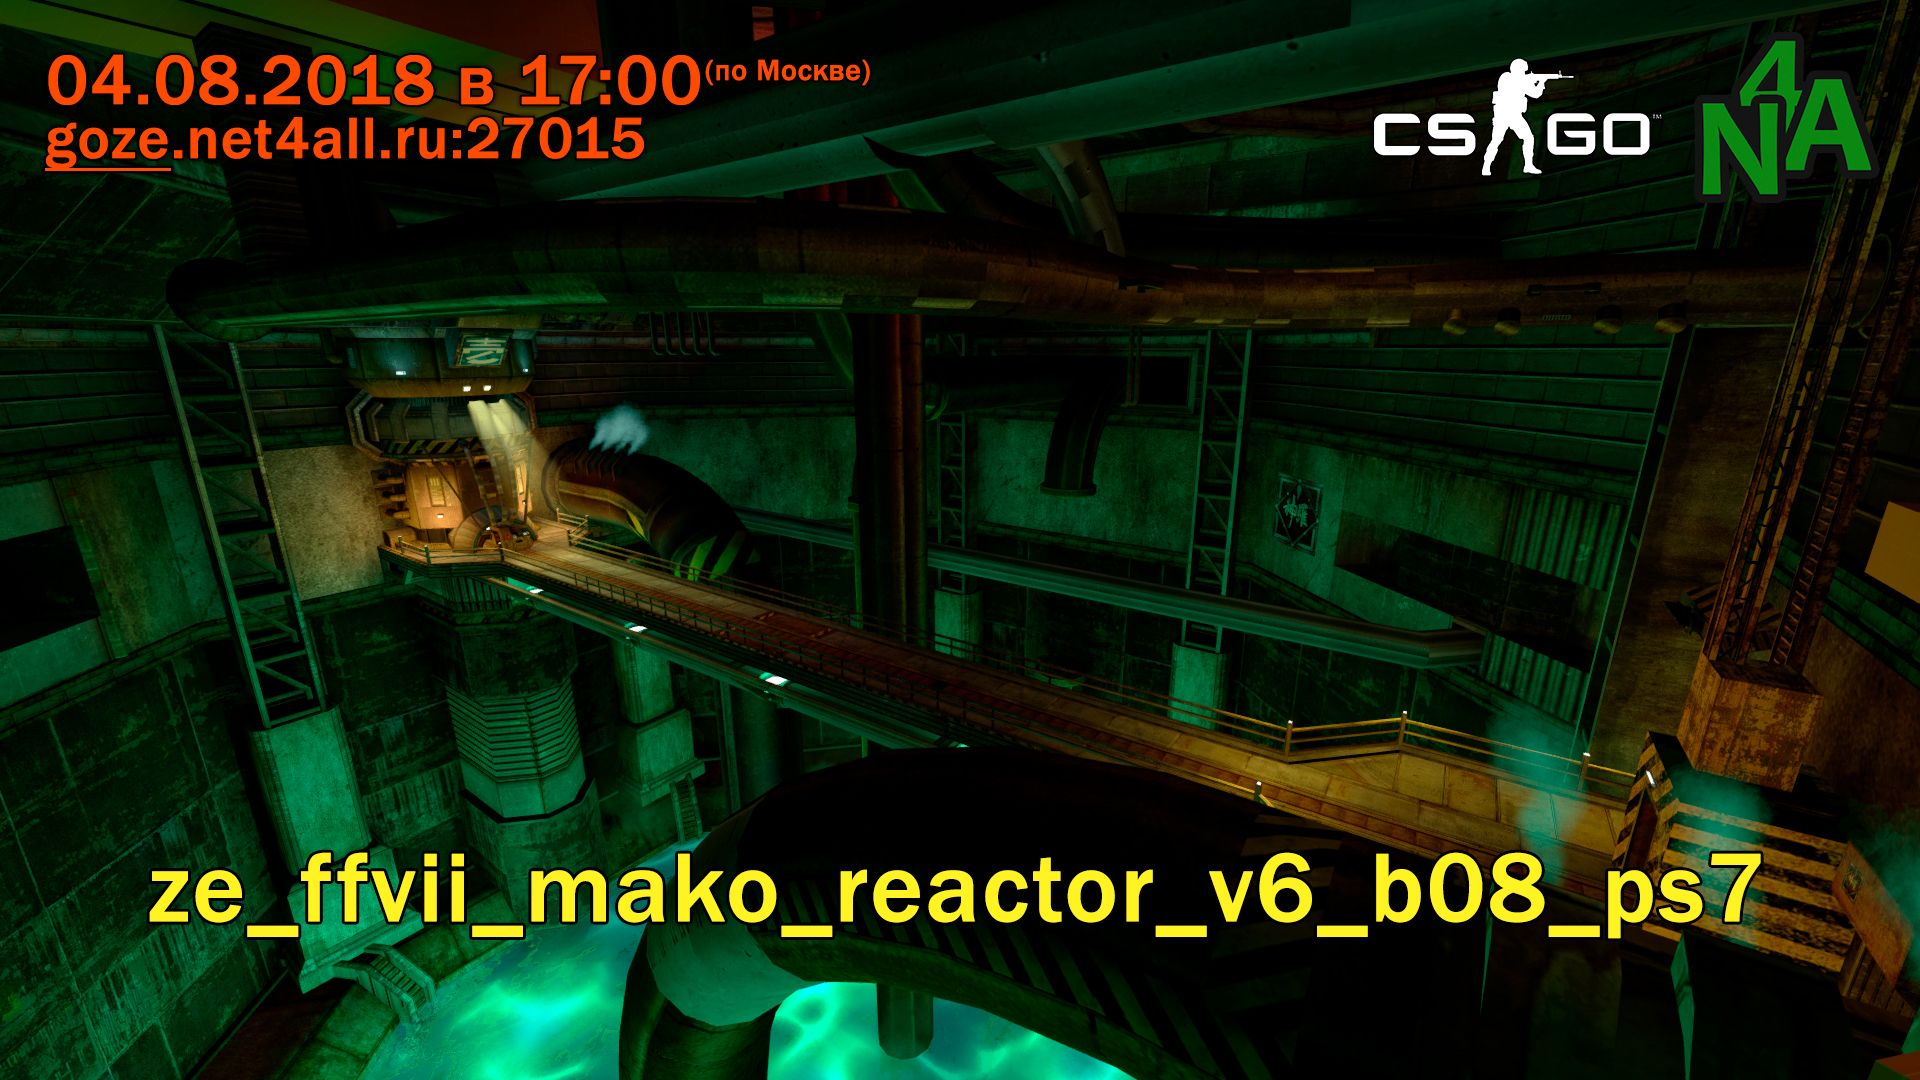 event_csgo_ze_ffvii_mako_reactor_v6_b08_ps7.jpg